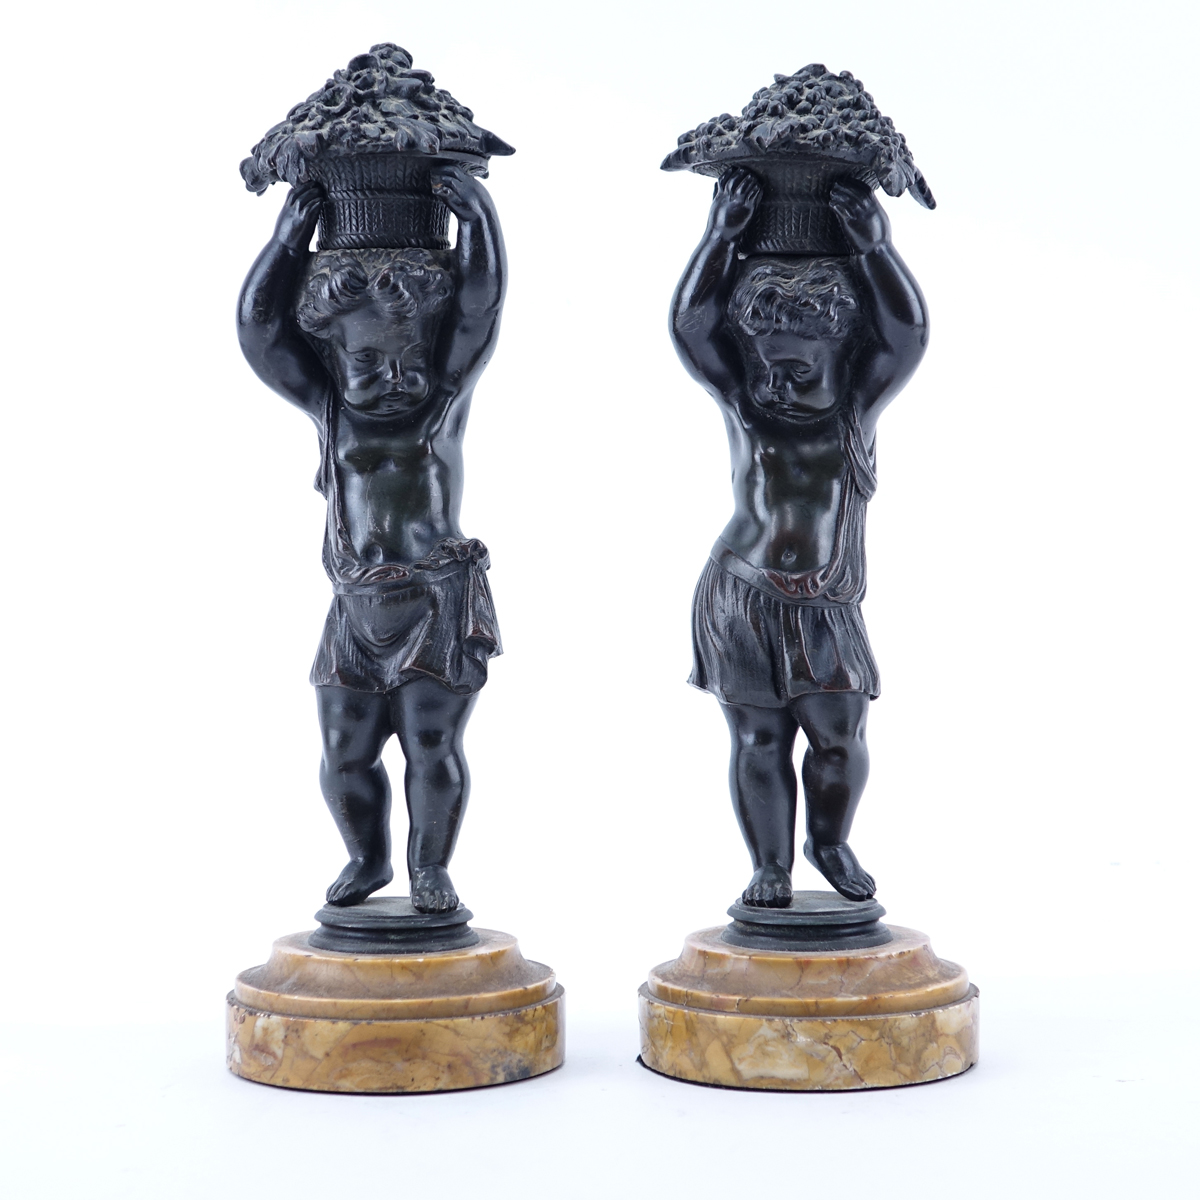 Pair of 19/20th Century Continental Bronze Putti Figures With Baskets on Sienna Marble Bases. Unsigned.